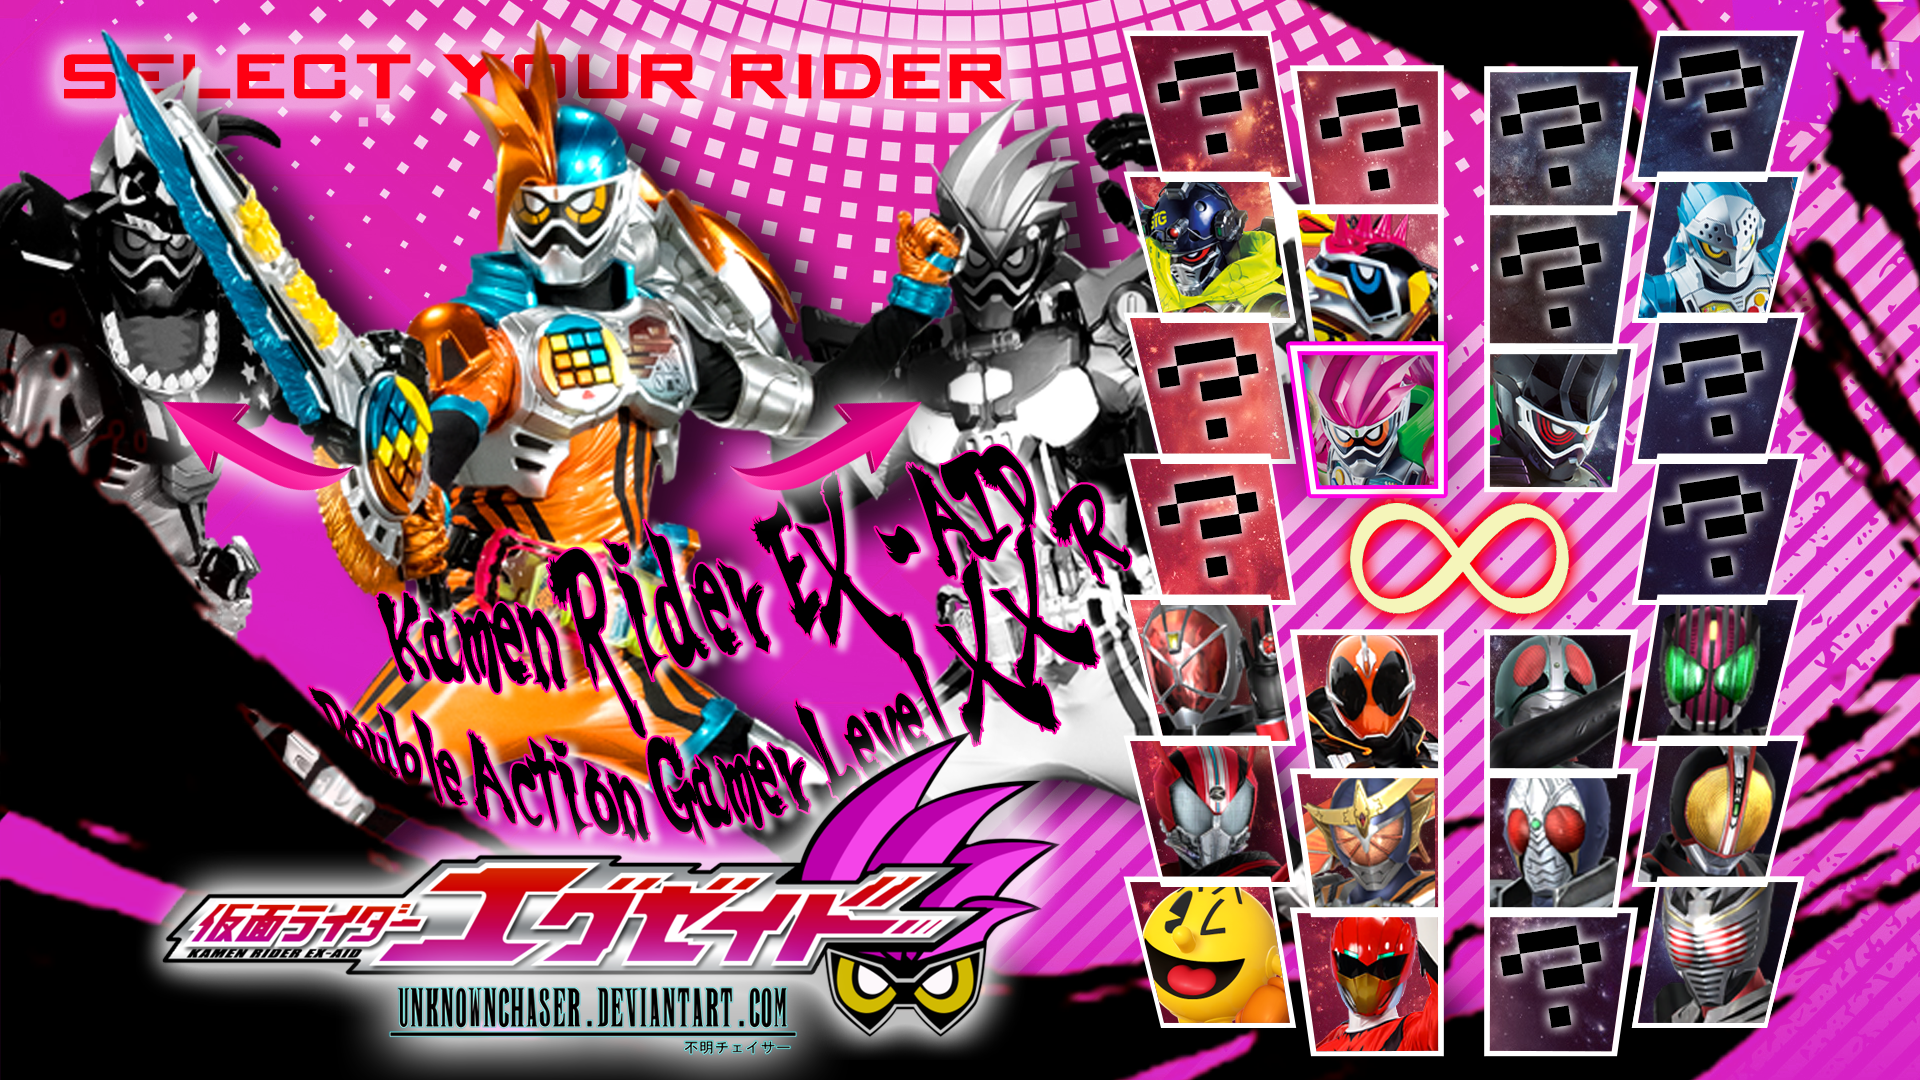 Kamen Rider Ex Aid Level Xx R Wallpaper By Unknownchaser On Deviantart